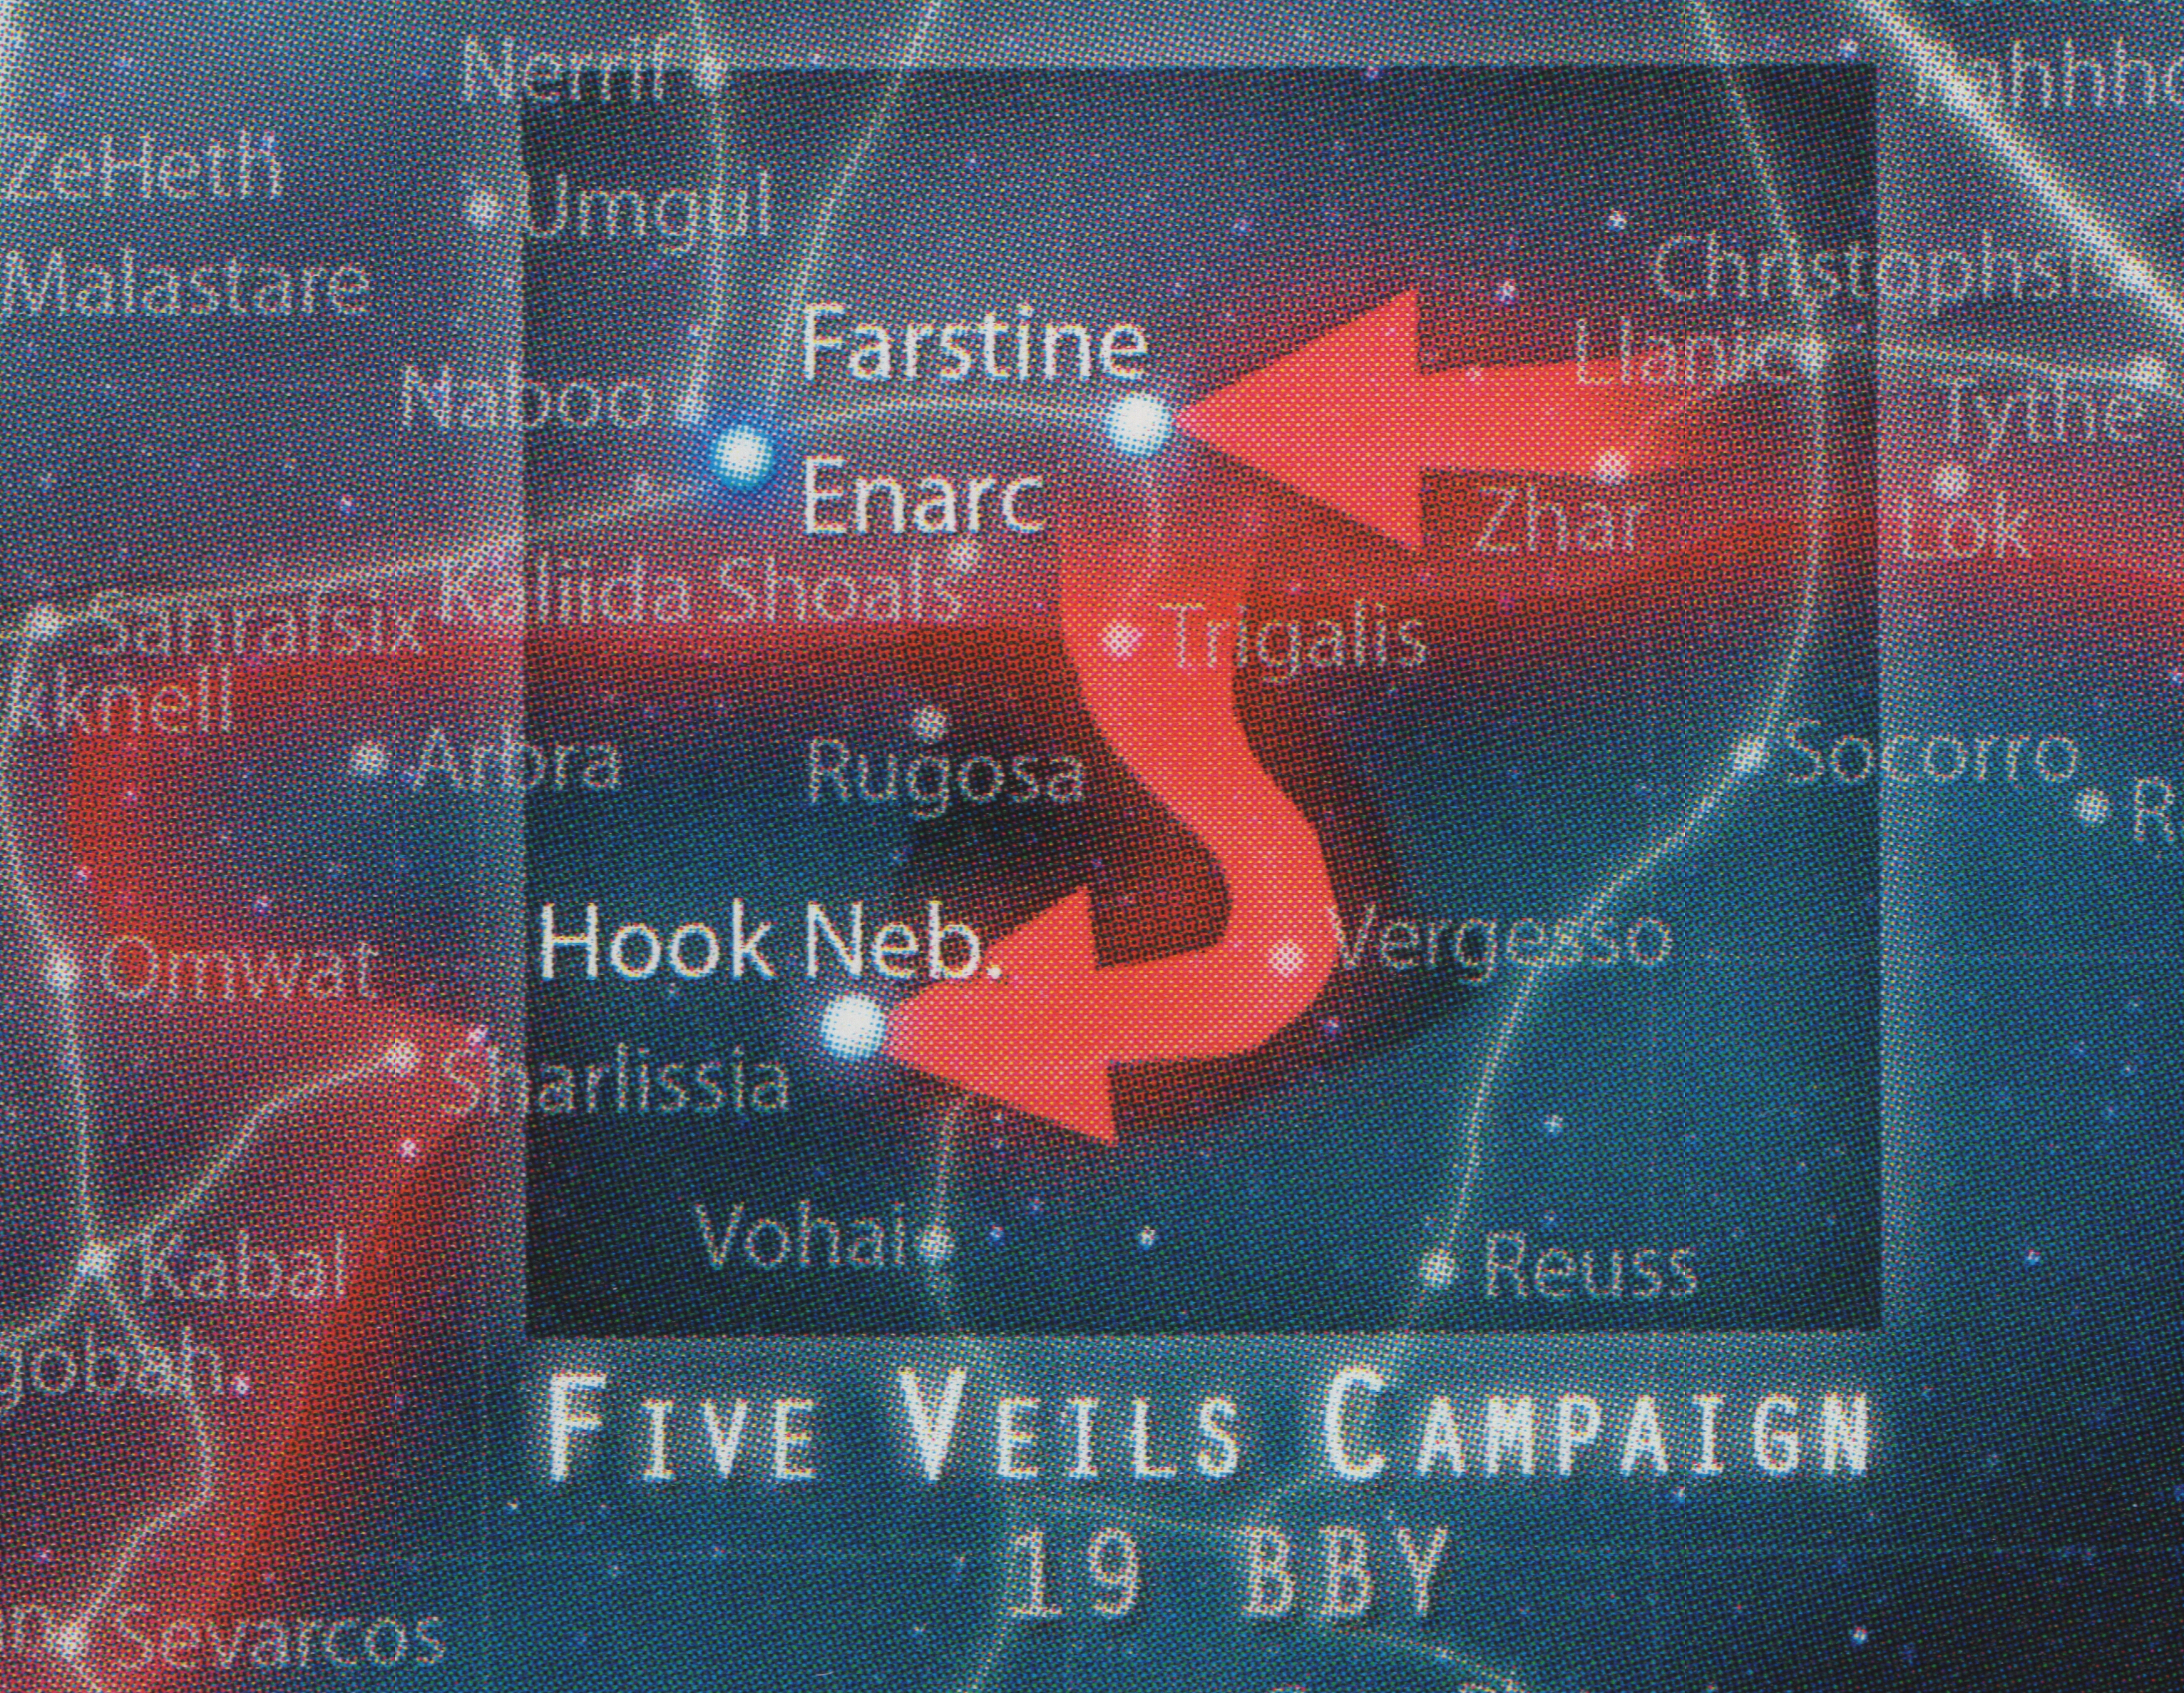 File:Five Veils Campaign.jpg